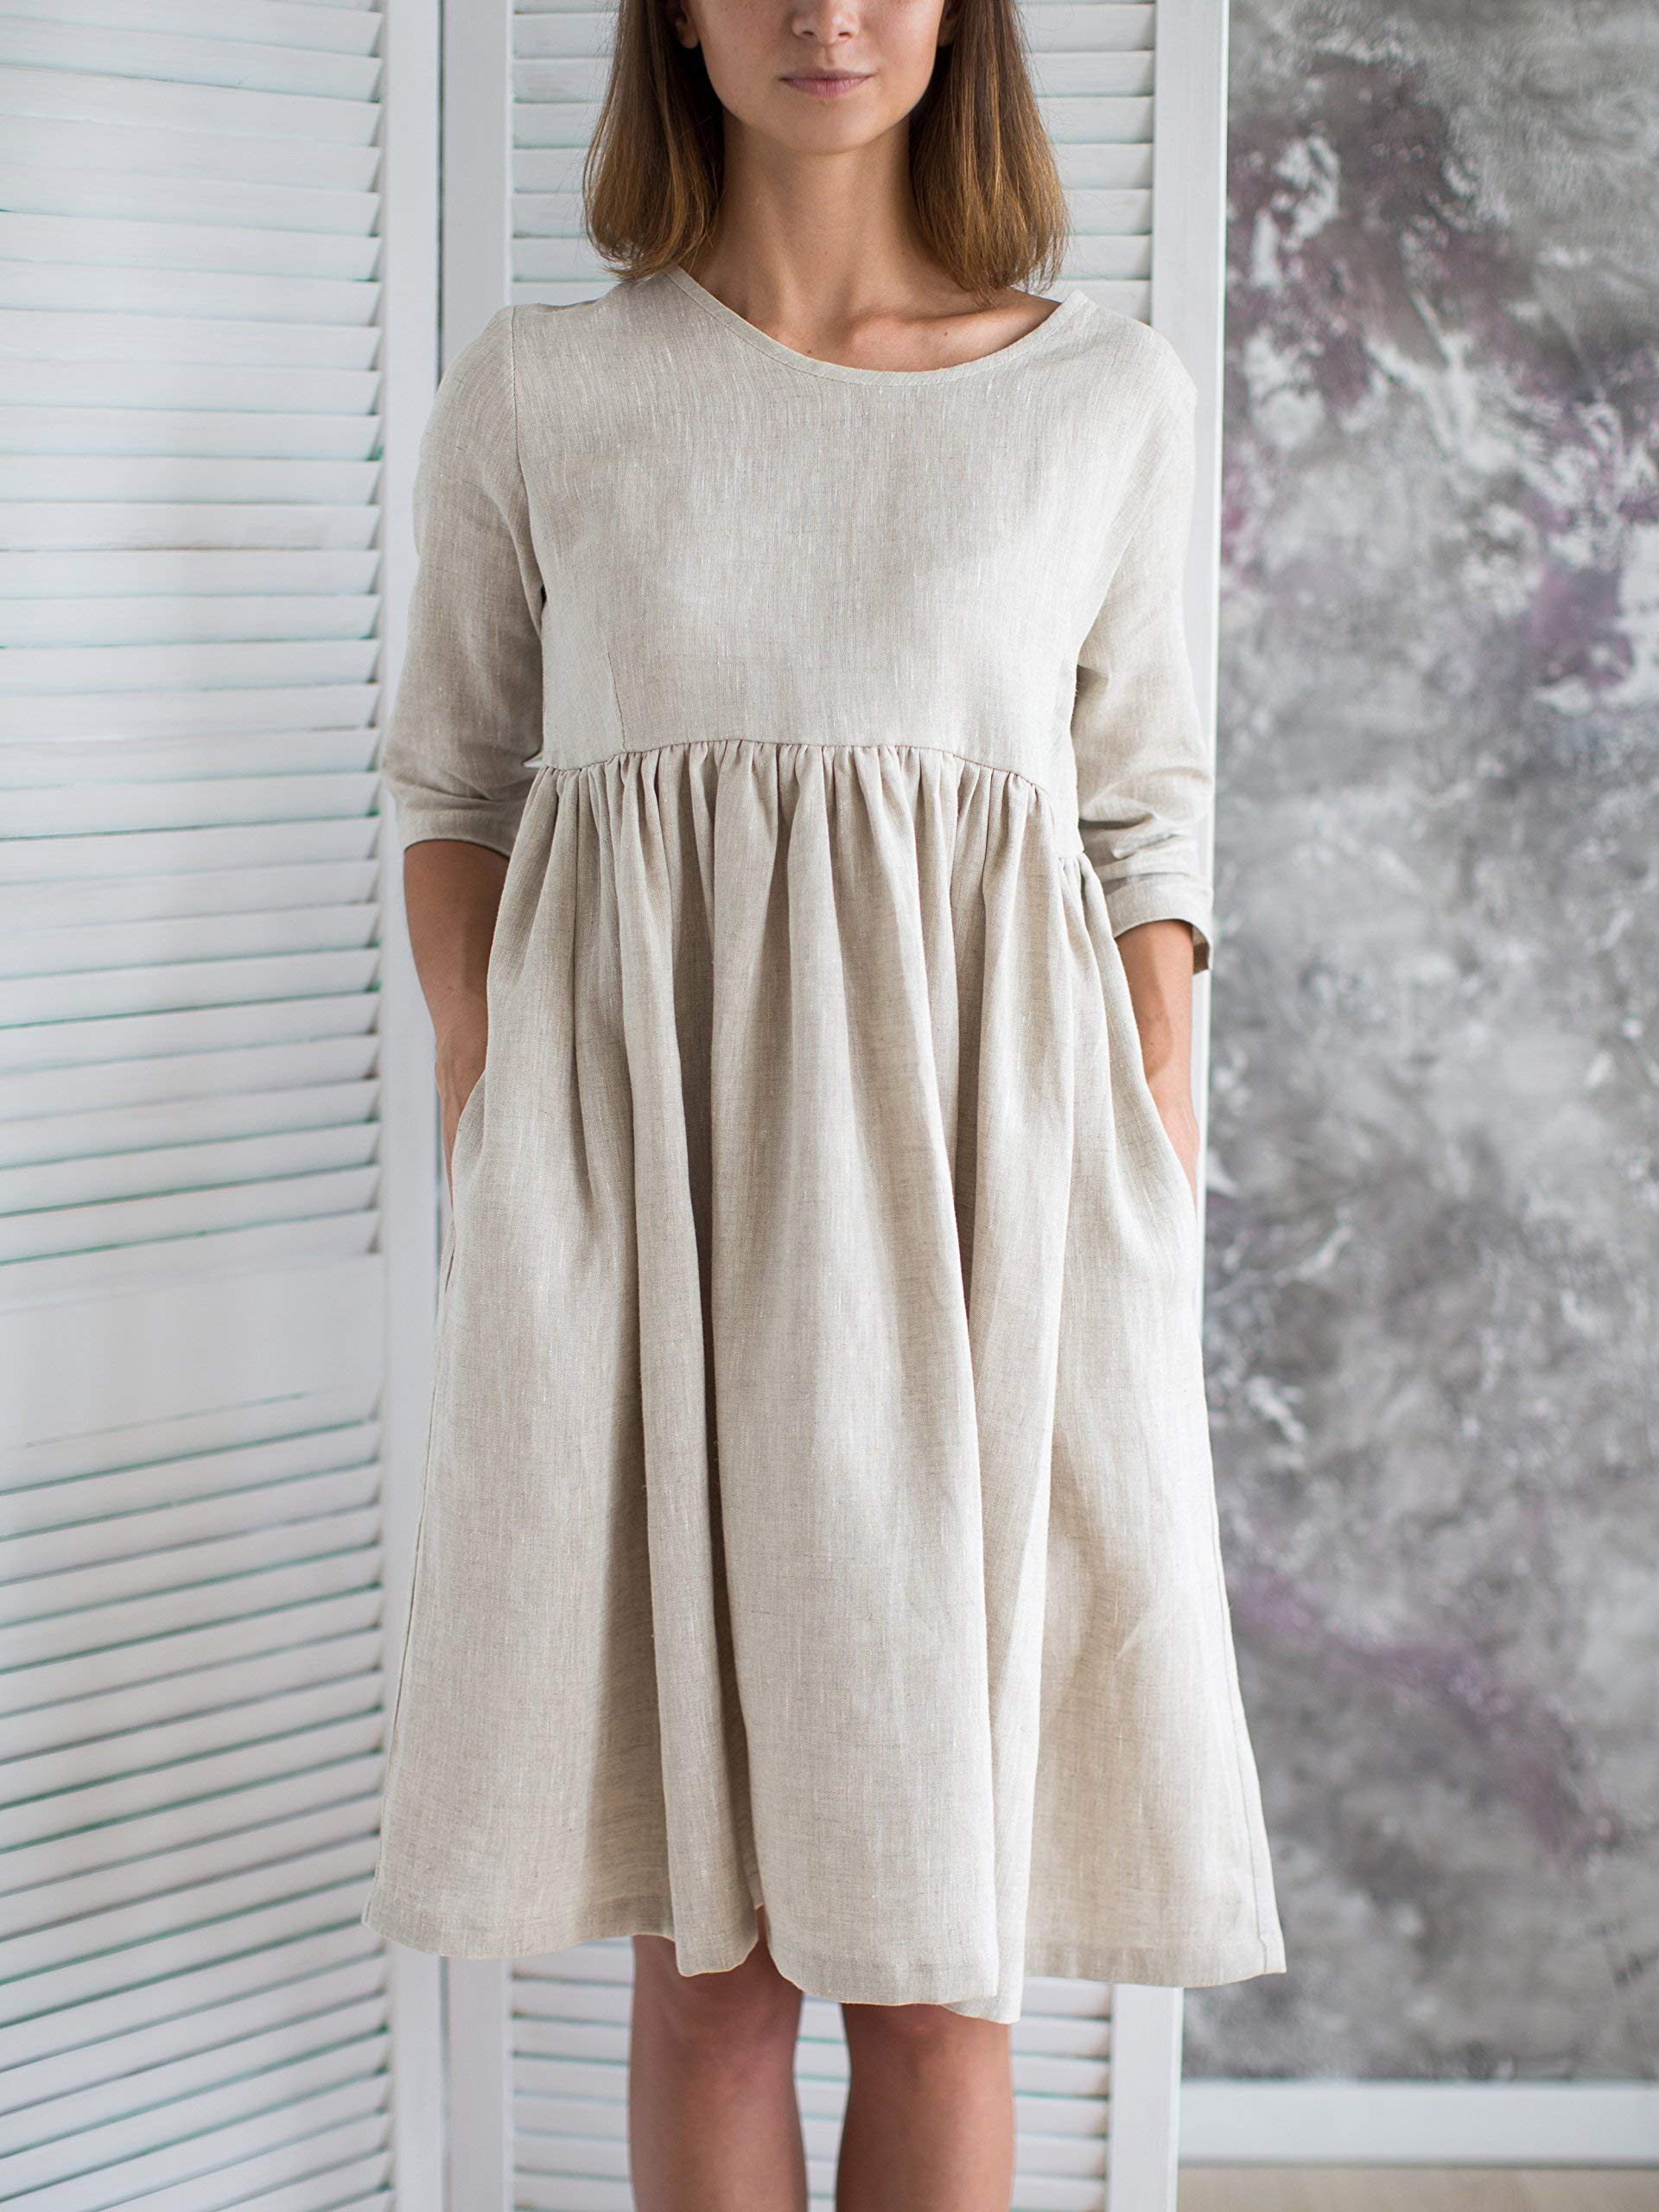 Linen Dress/Flax Dress/Casual Linen Dress/Linen Clothing/Long Sleeve Dress/Linen Kaftan Dress/Clothing linen